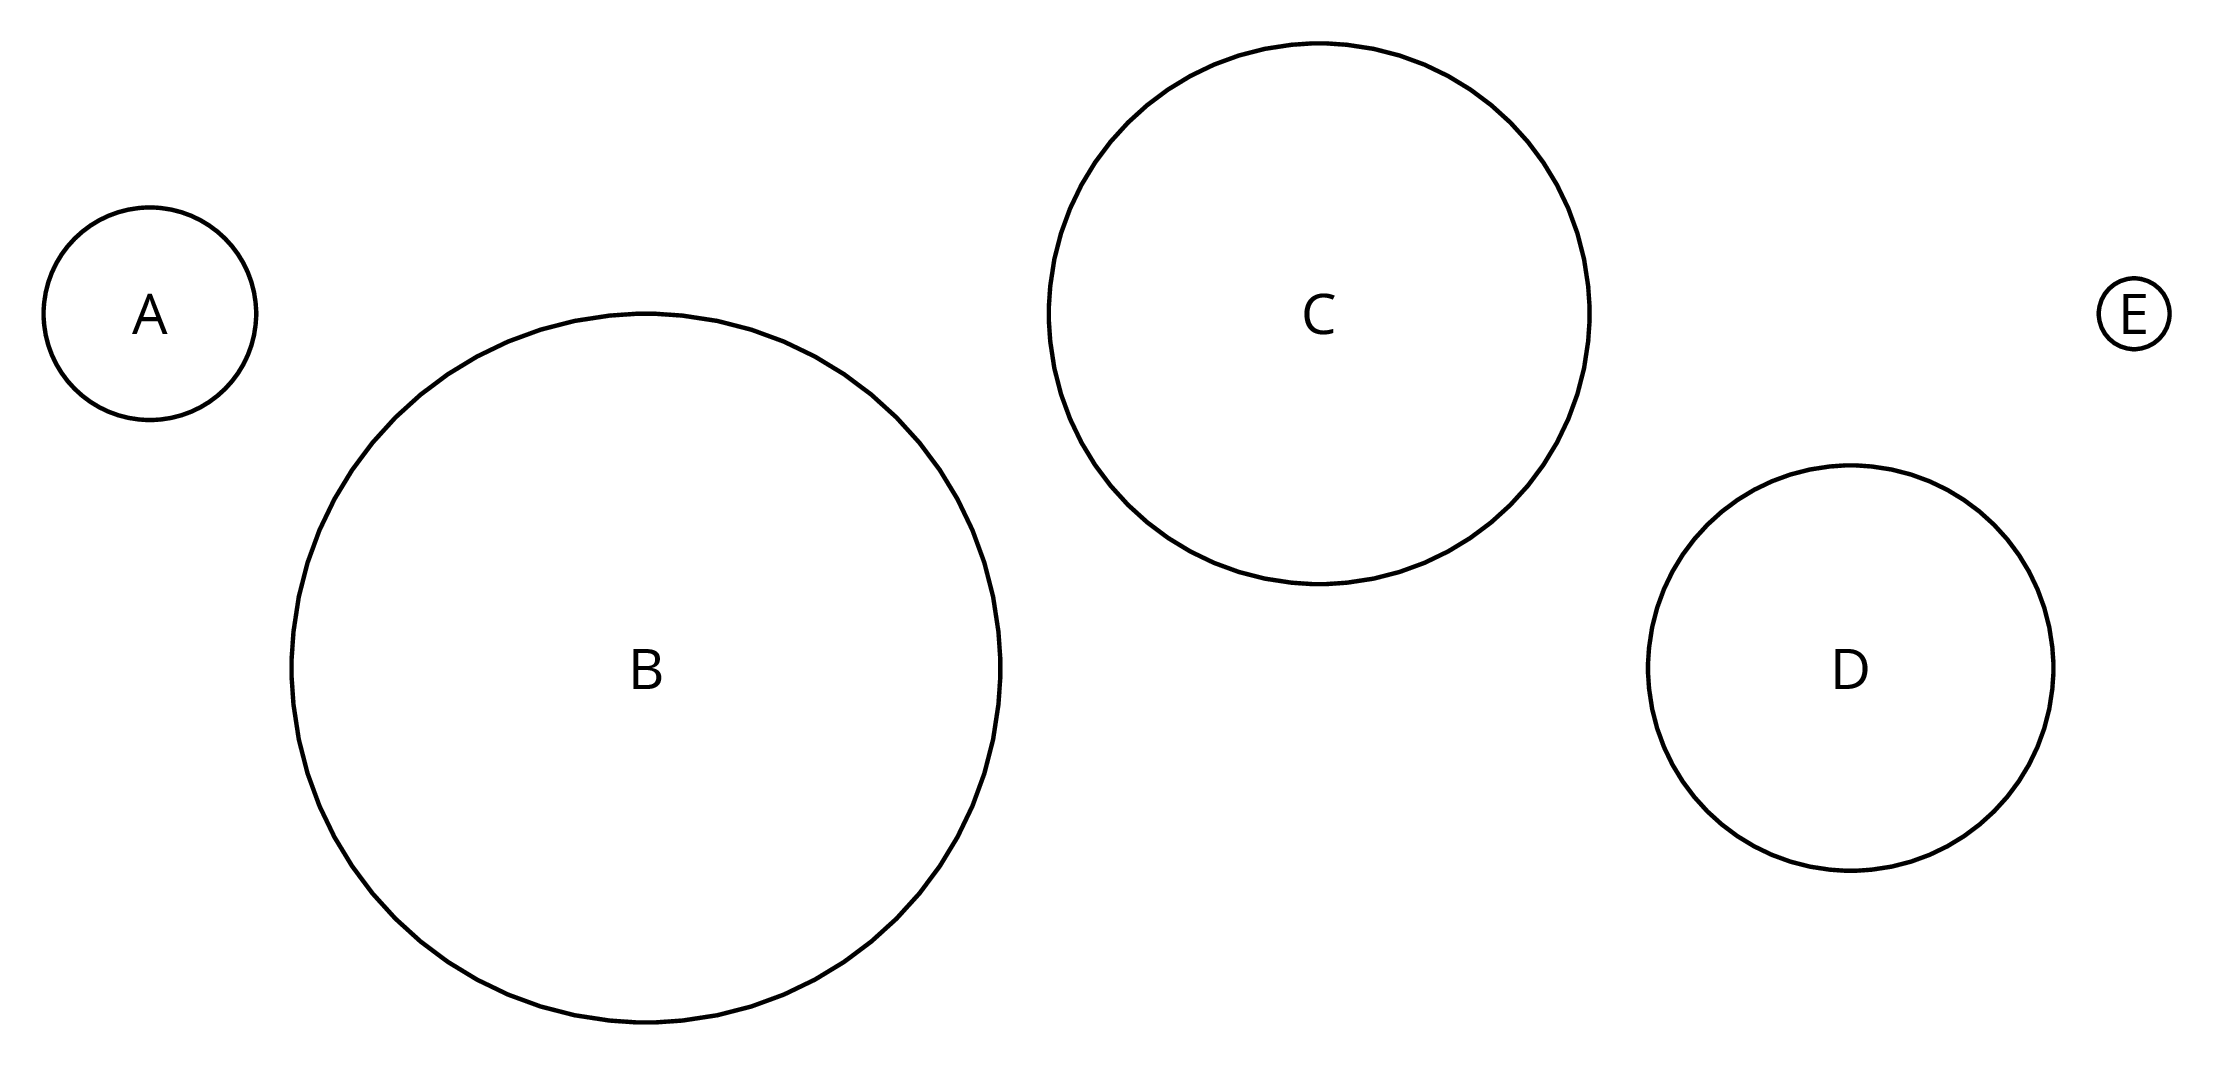 Five circles, each with a different diameter, are labeled A, B, C, D, and E.